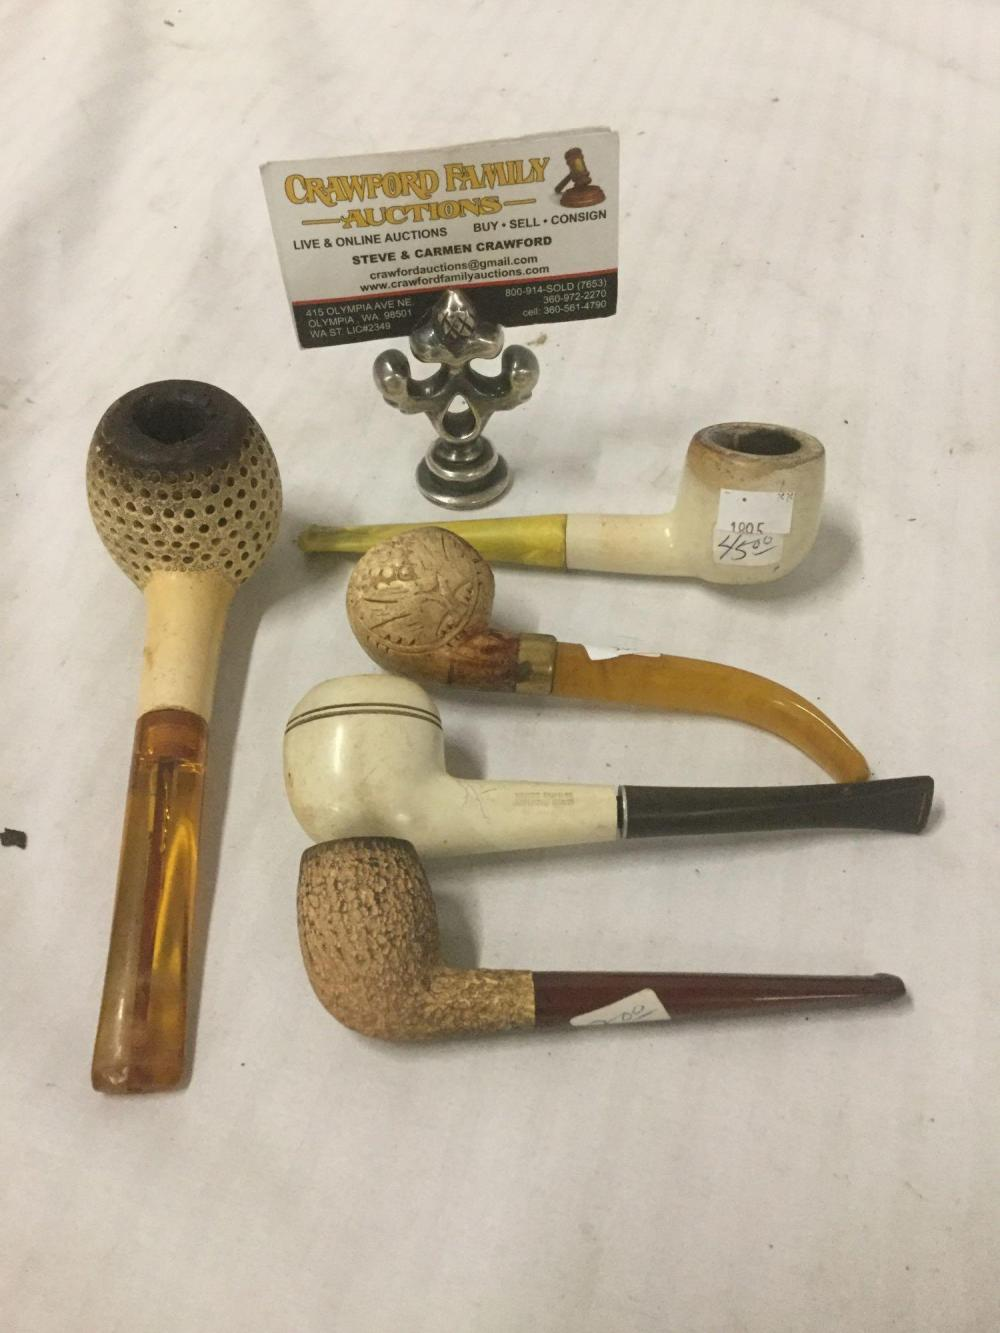 Collection of 5 vintage meerschaum style pipes - one is Briar wood